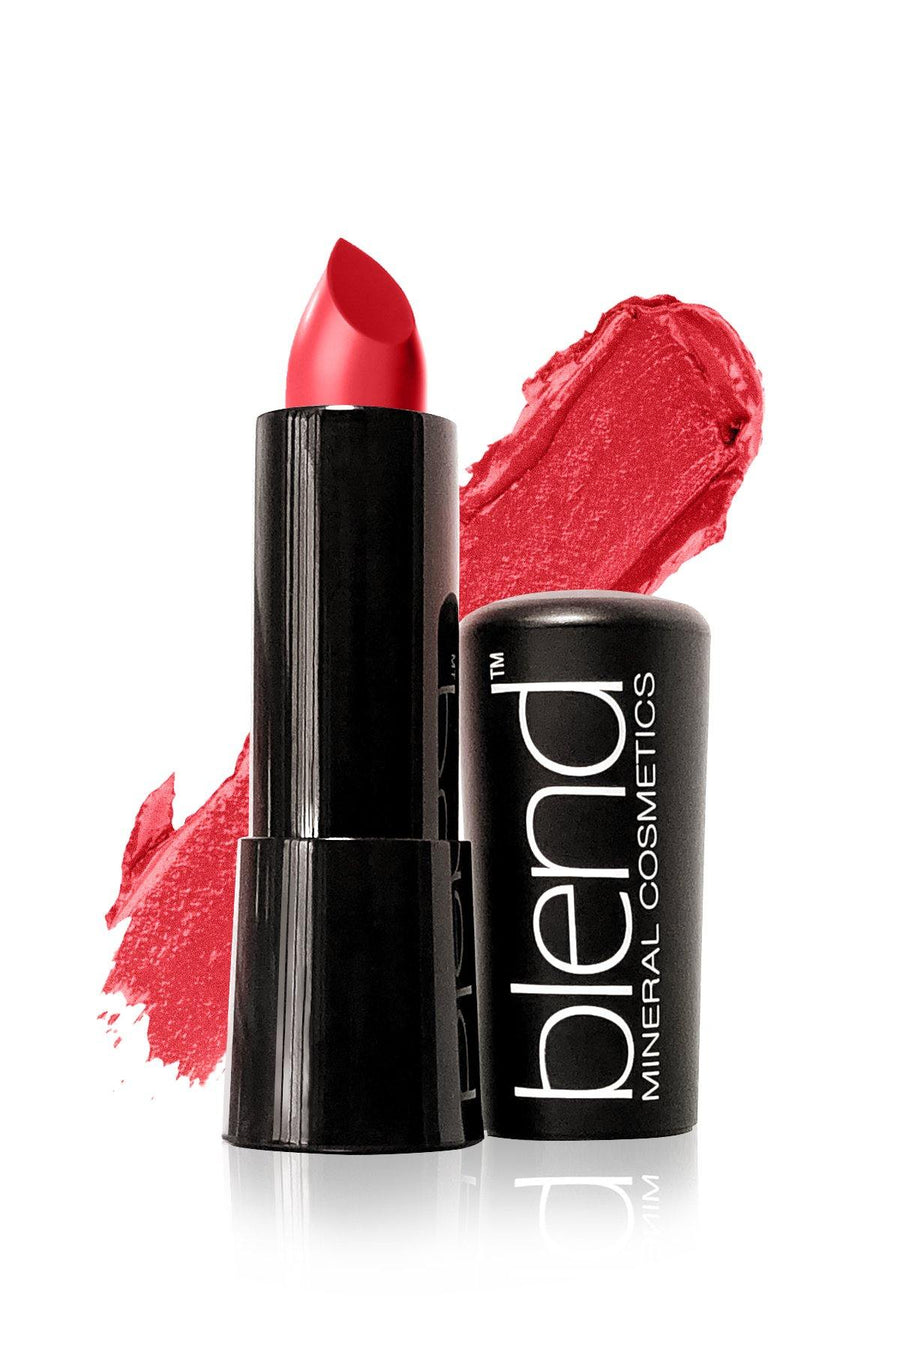 Lipstick #3 - Red - Blend Mineral Cosmetics